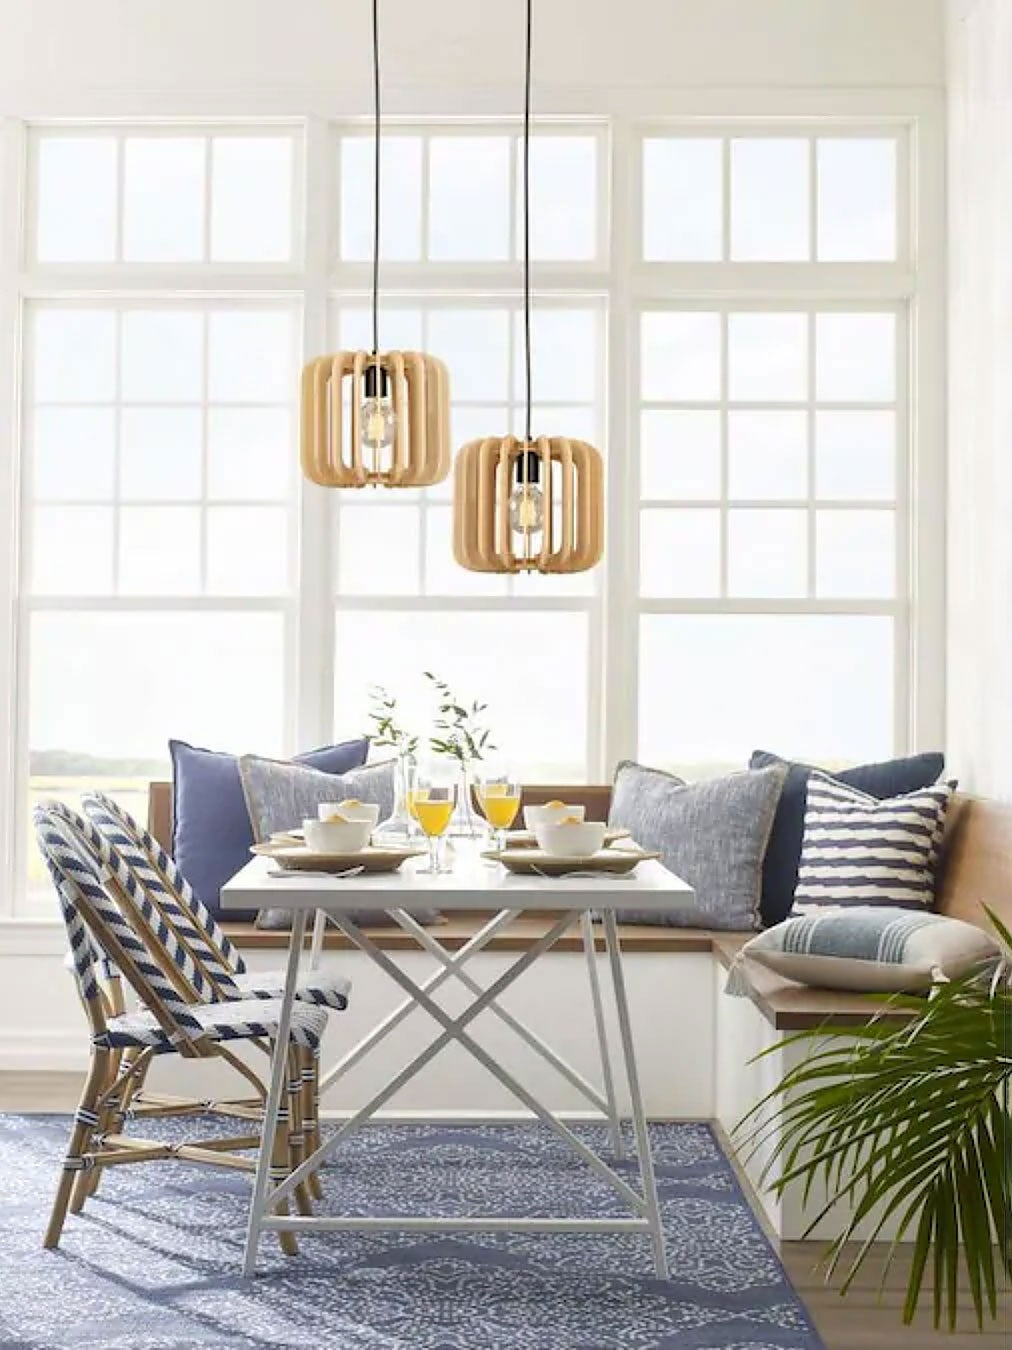 dining room with pendant lights over table